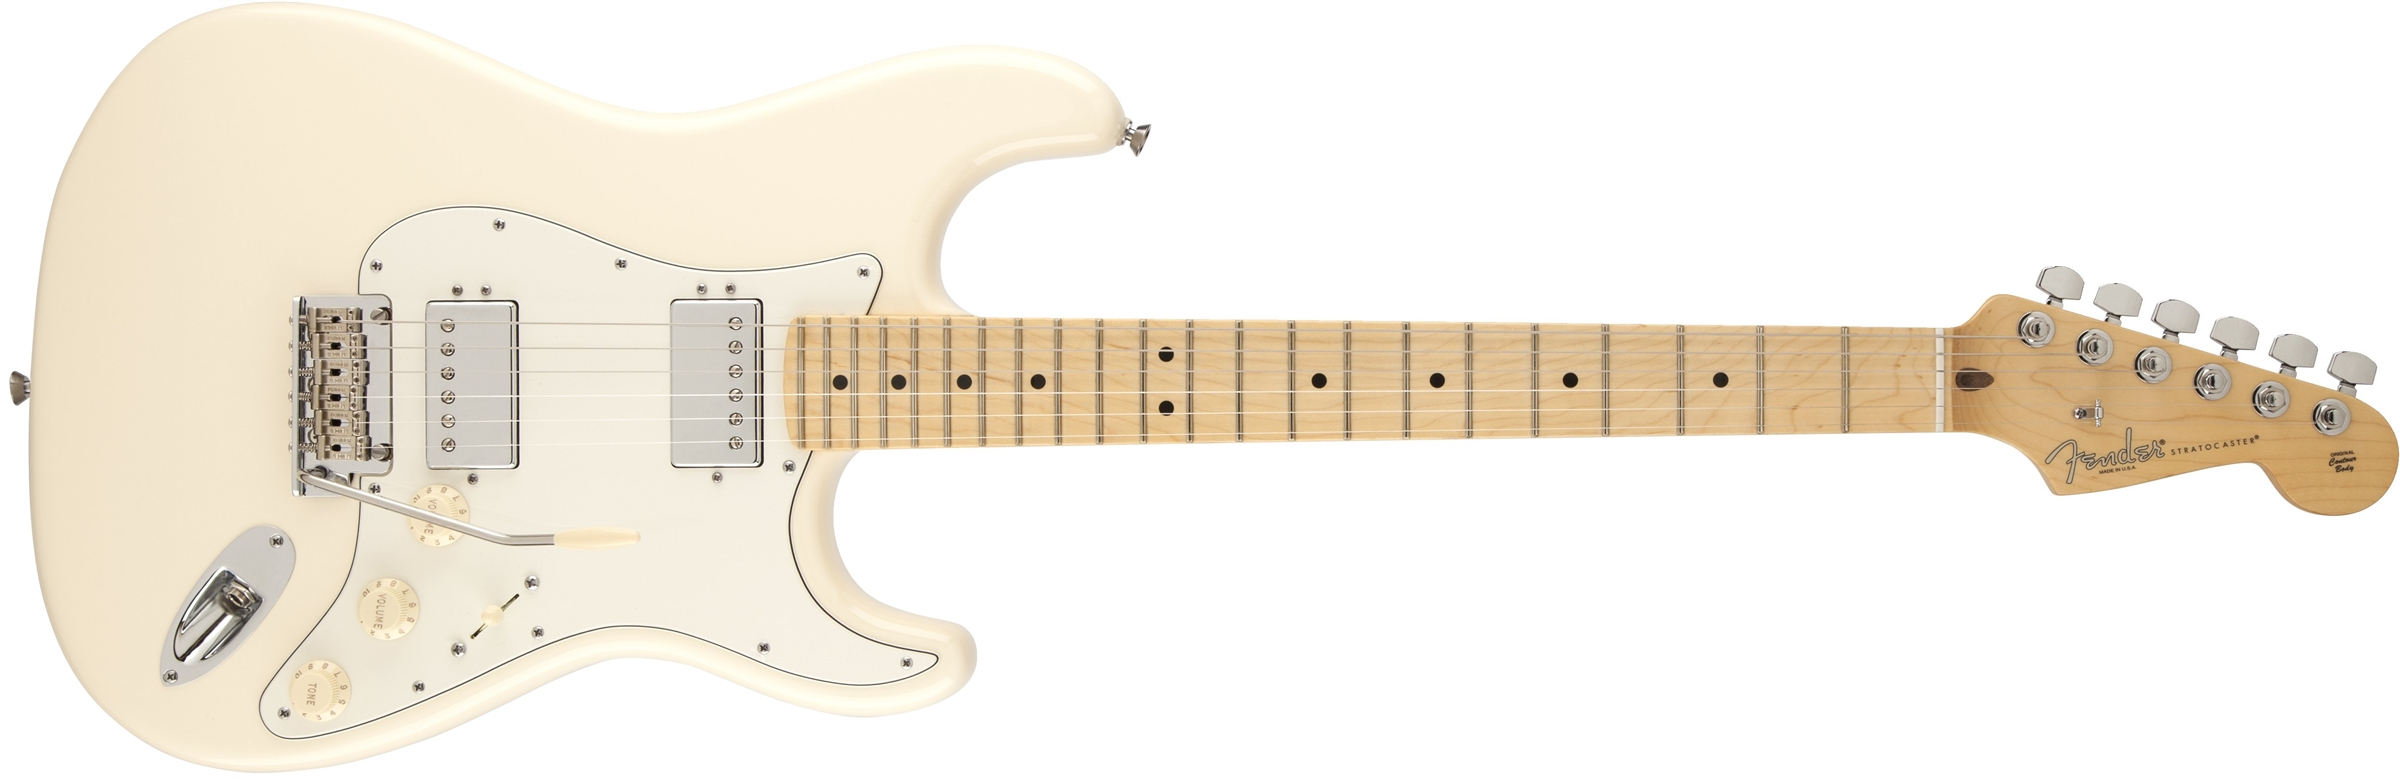 american standard stratocaster 174 hh maple fingerboard olympic white fender electric guitars